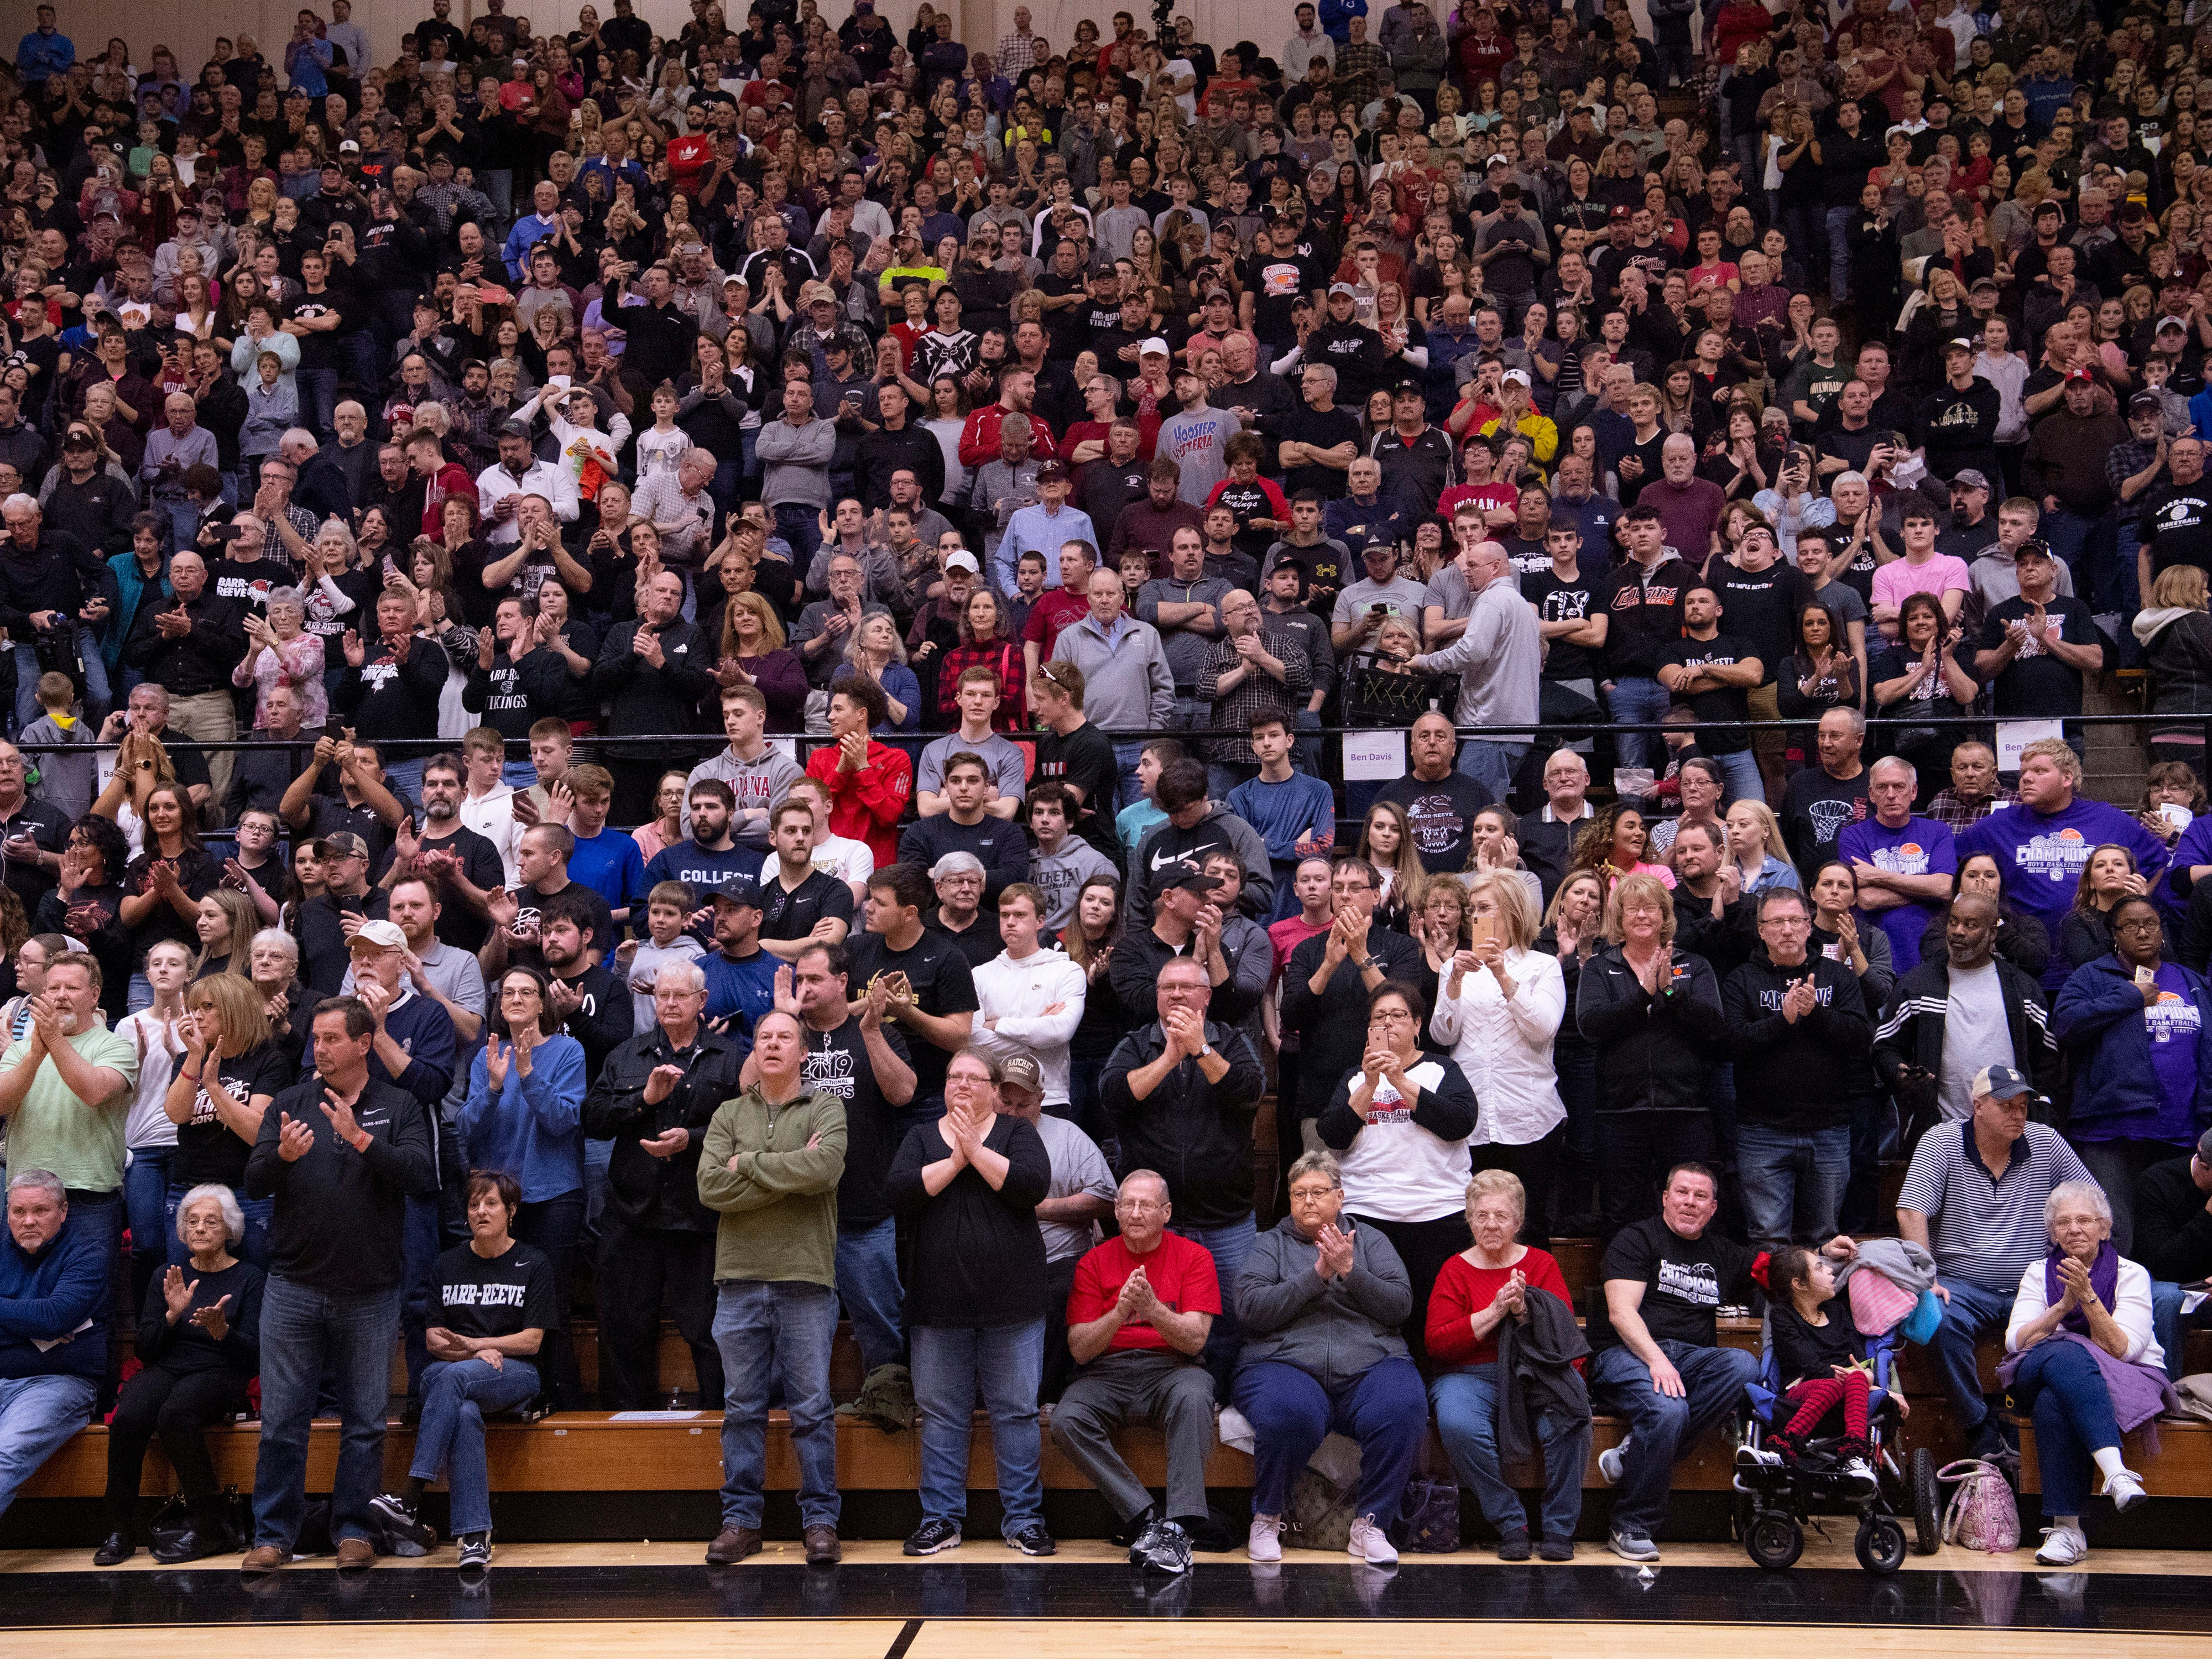 Barr-Reeve's fans cheer them after they beat Bloomfield at the 1A Boys Indiana Semi-State Basketball Tournament at the Hatchet House in Washington, Ind., Saturday afternoon.